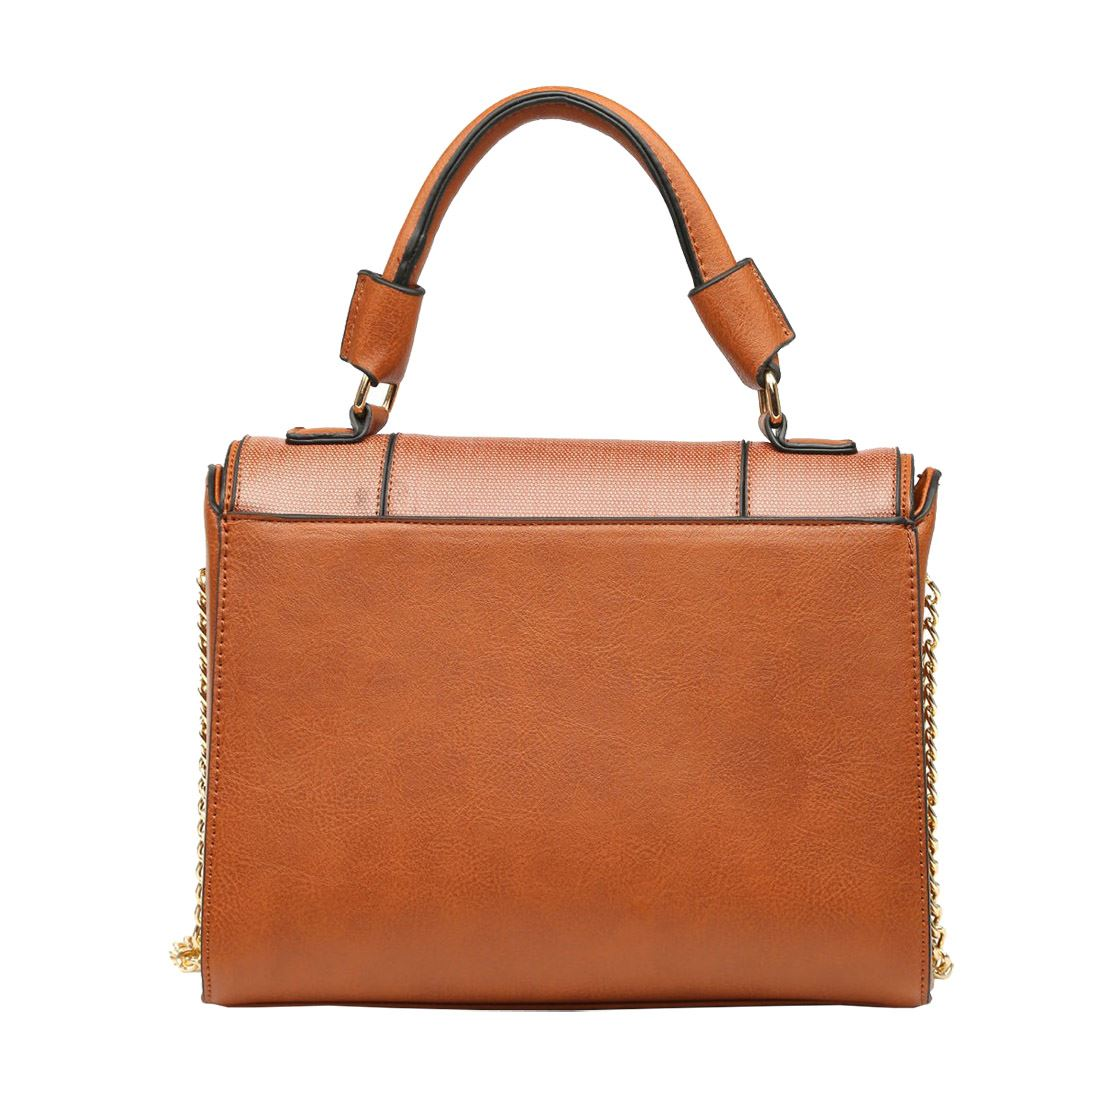 New-Synthetic-Leather-Kingfisher-Flower-Print-Ladies-Tote-Bag-Handbag thumbnail 7